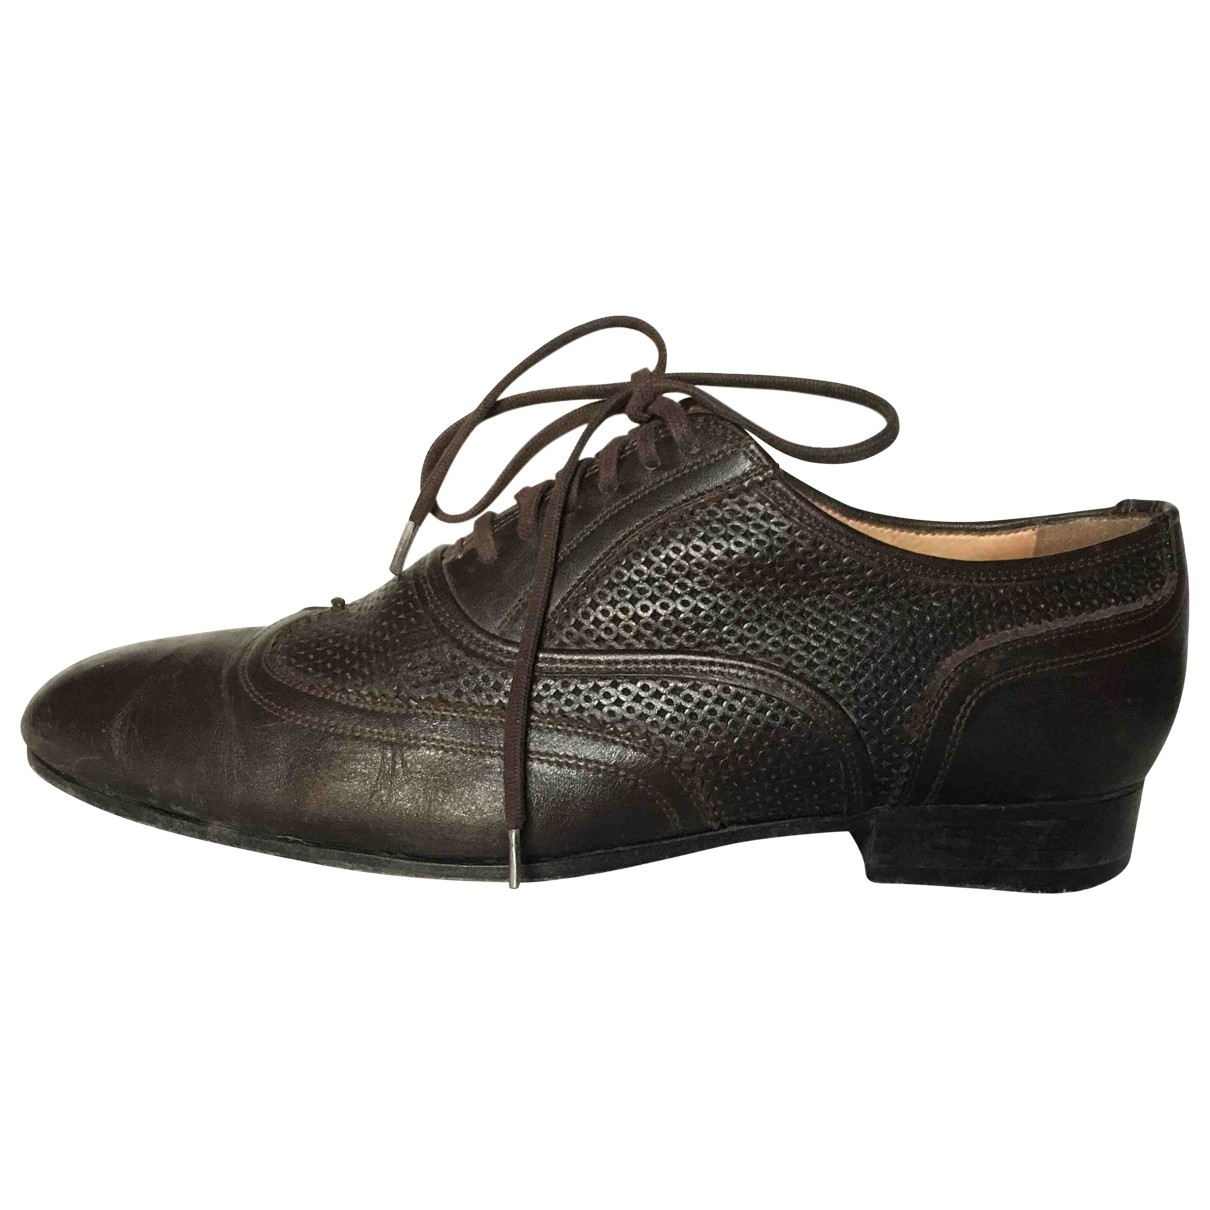 Neil Barrett - Derbies   pour femme en cuir - marron